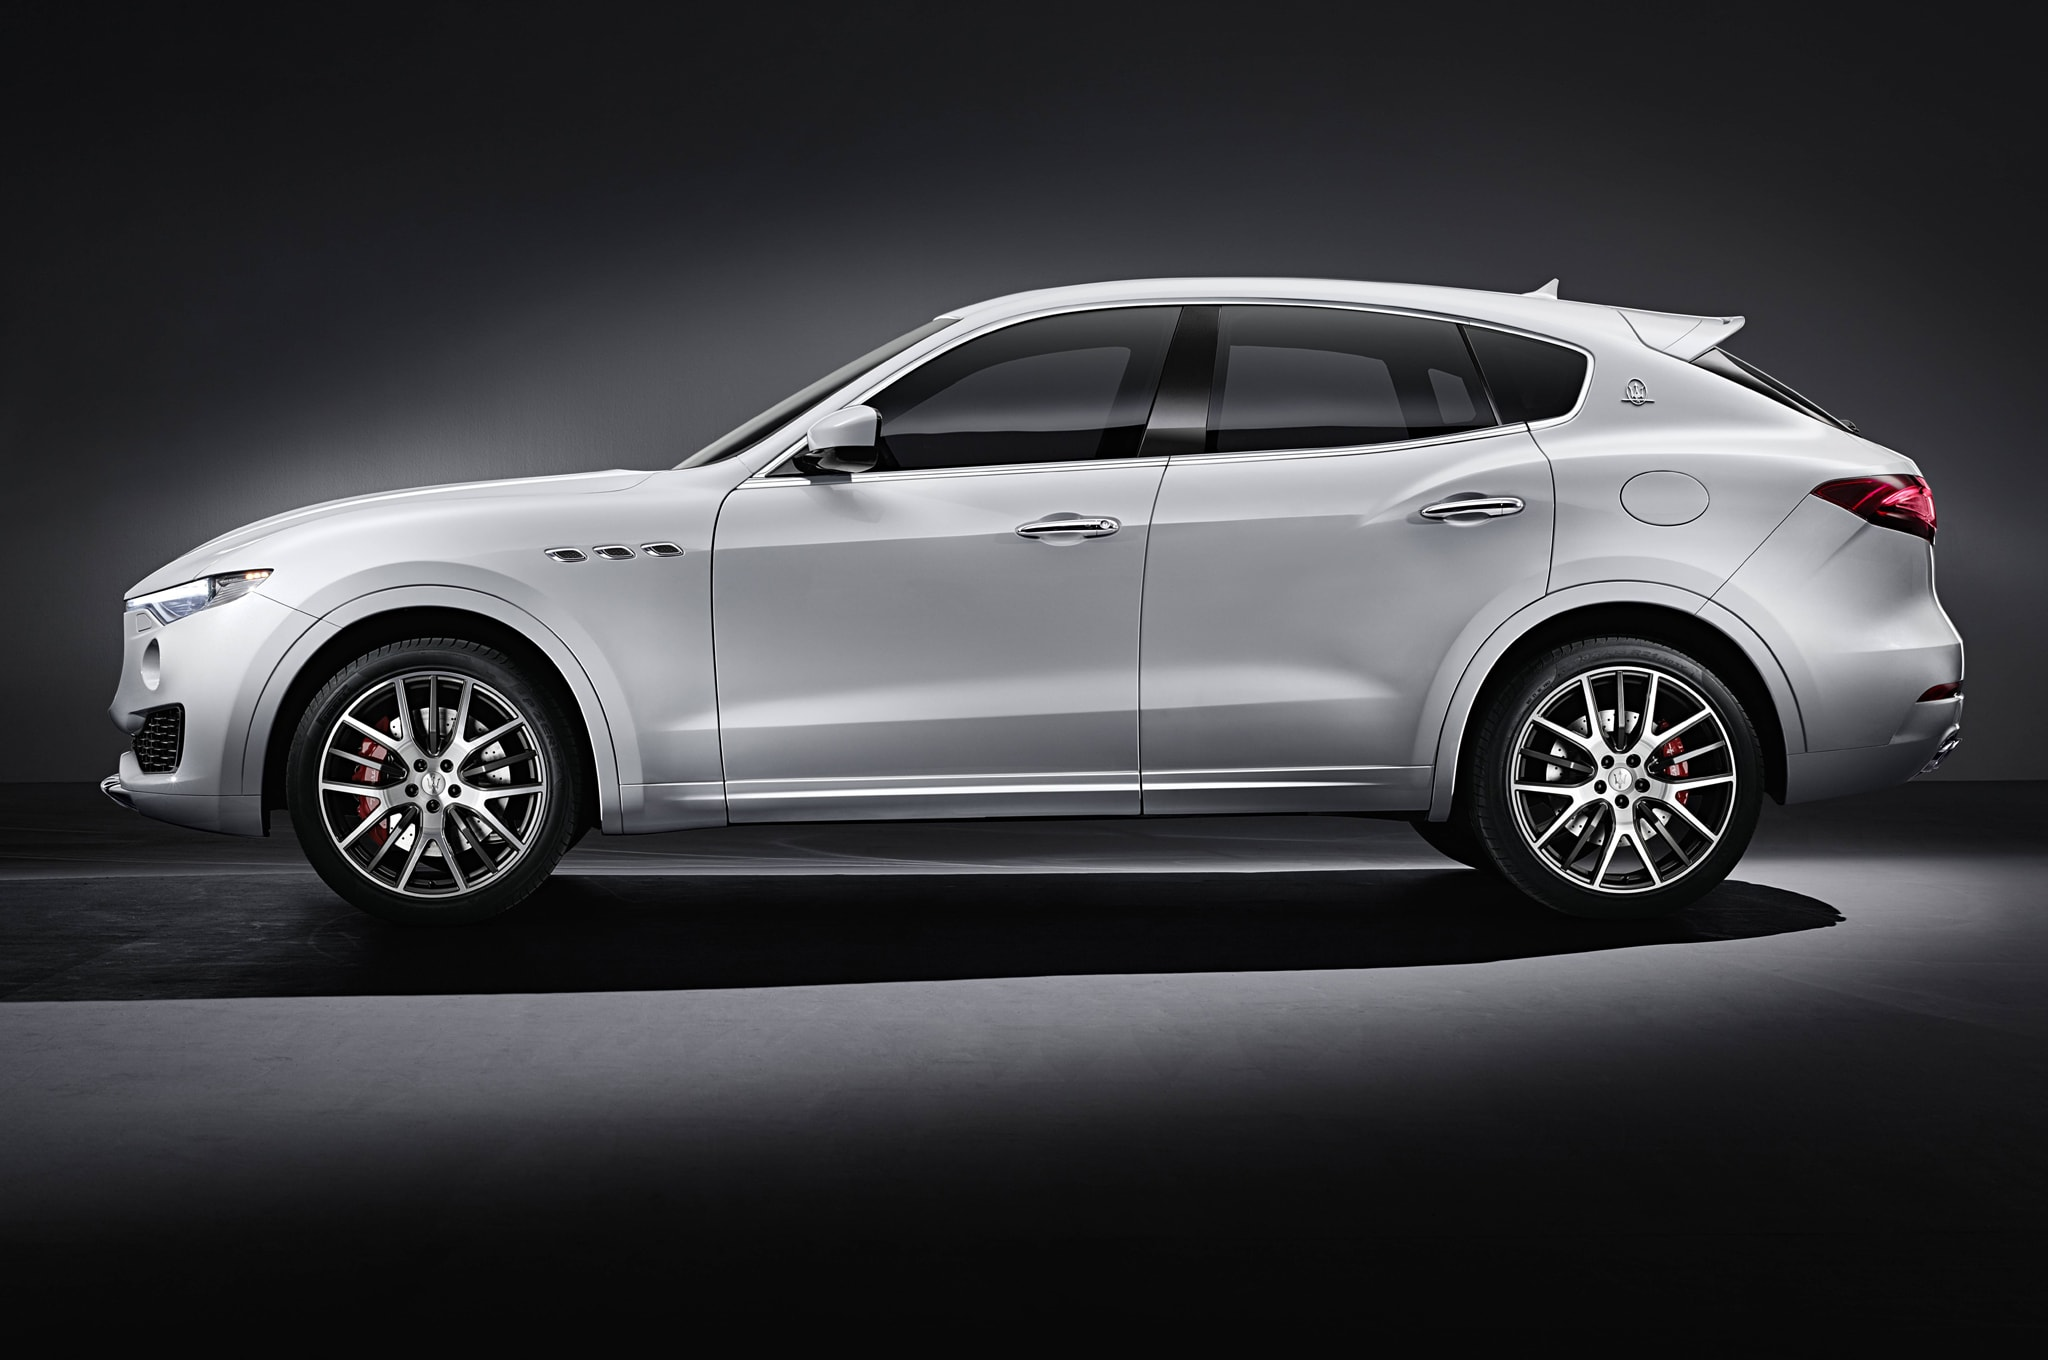 Maserati Levante HQ wallpapers